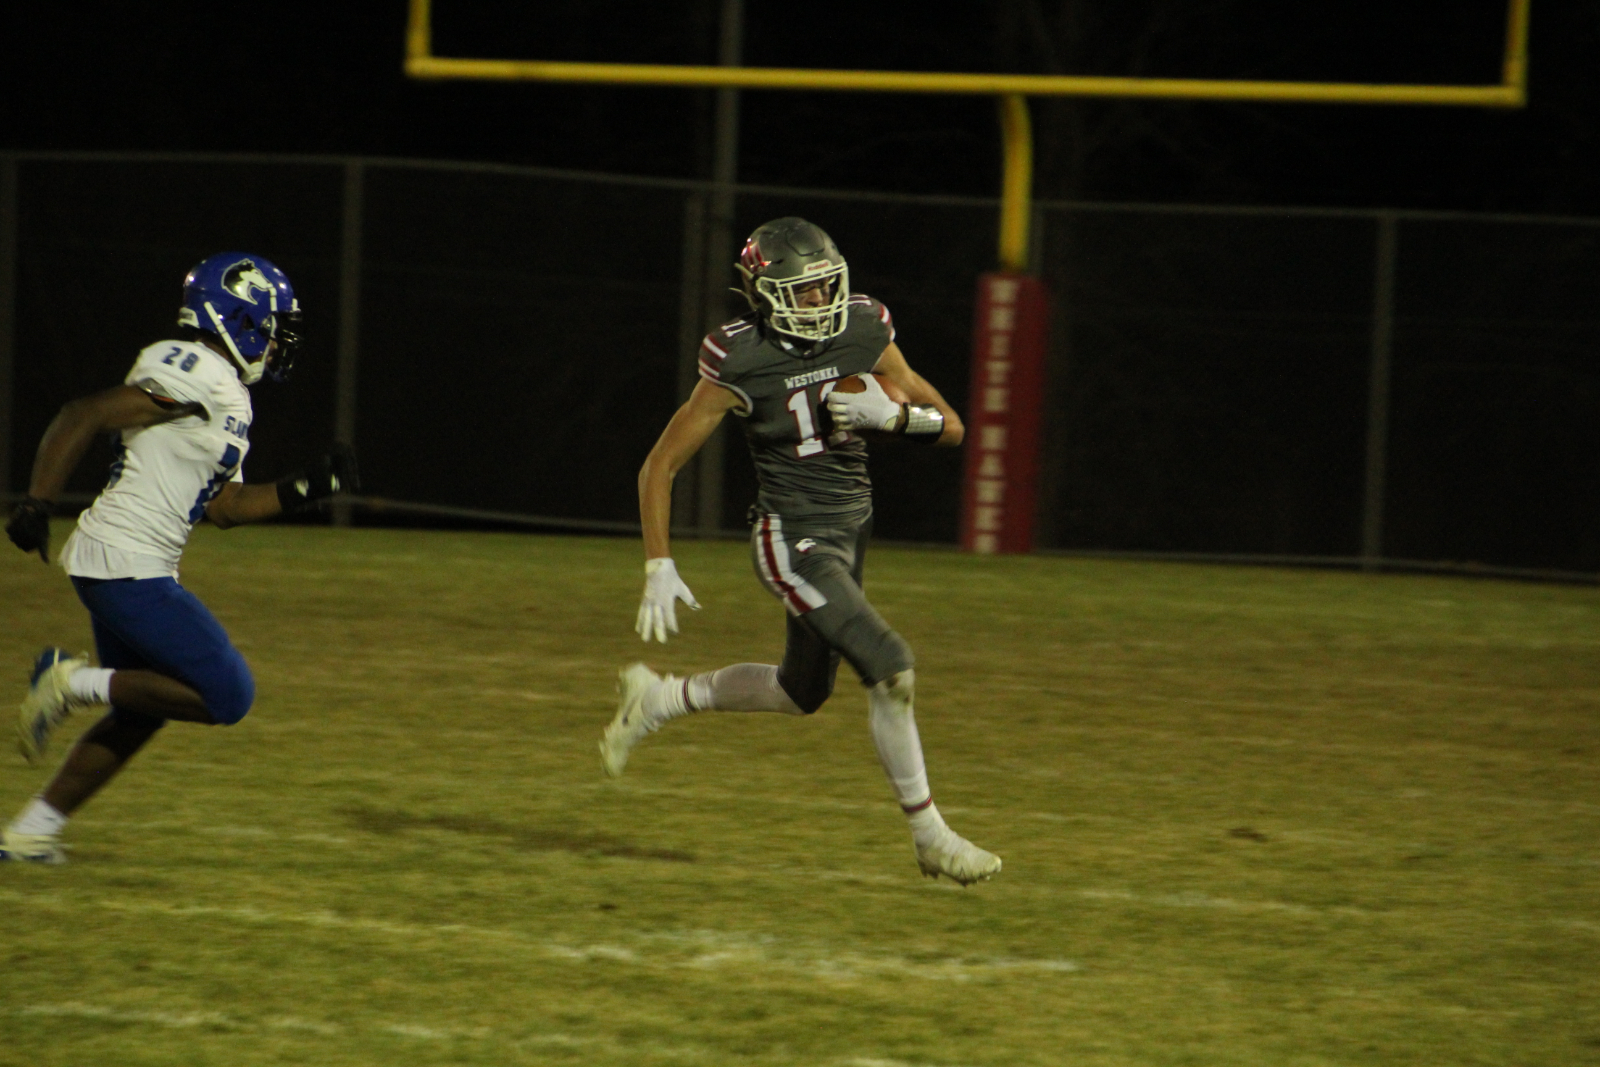 Leonard Selected to Play in Minnesota High School All-Star Football Game